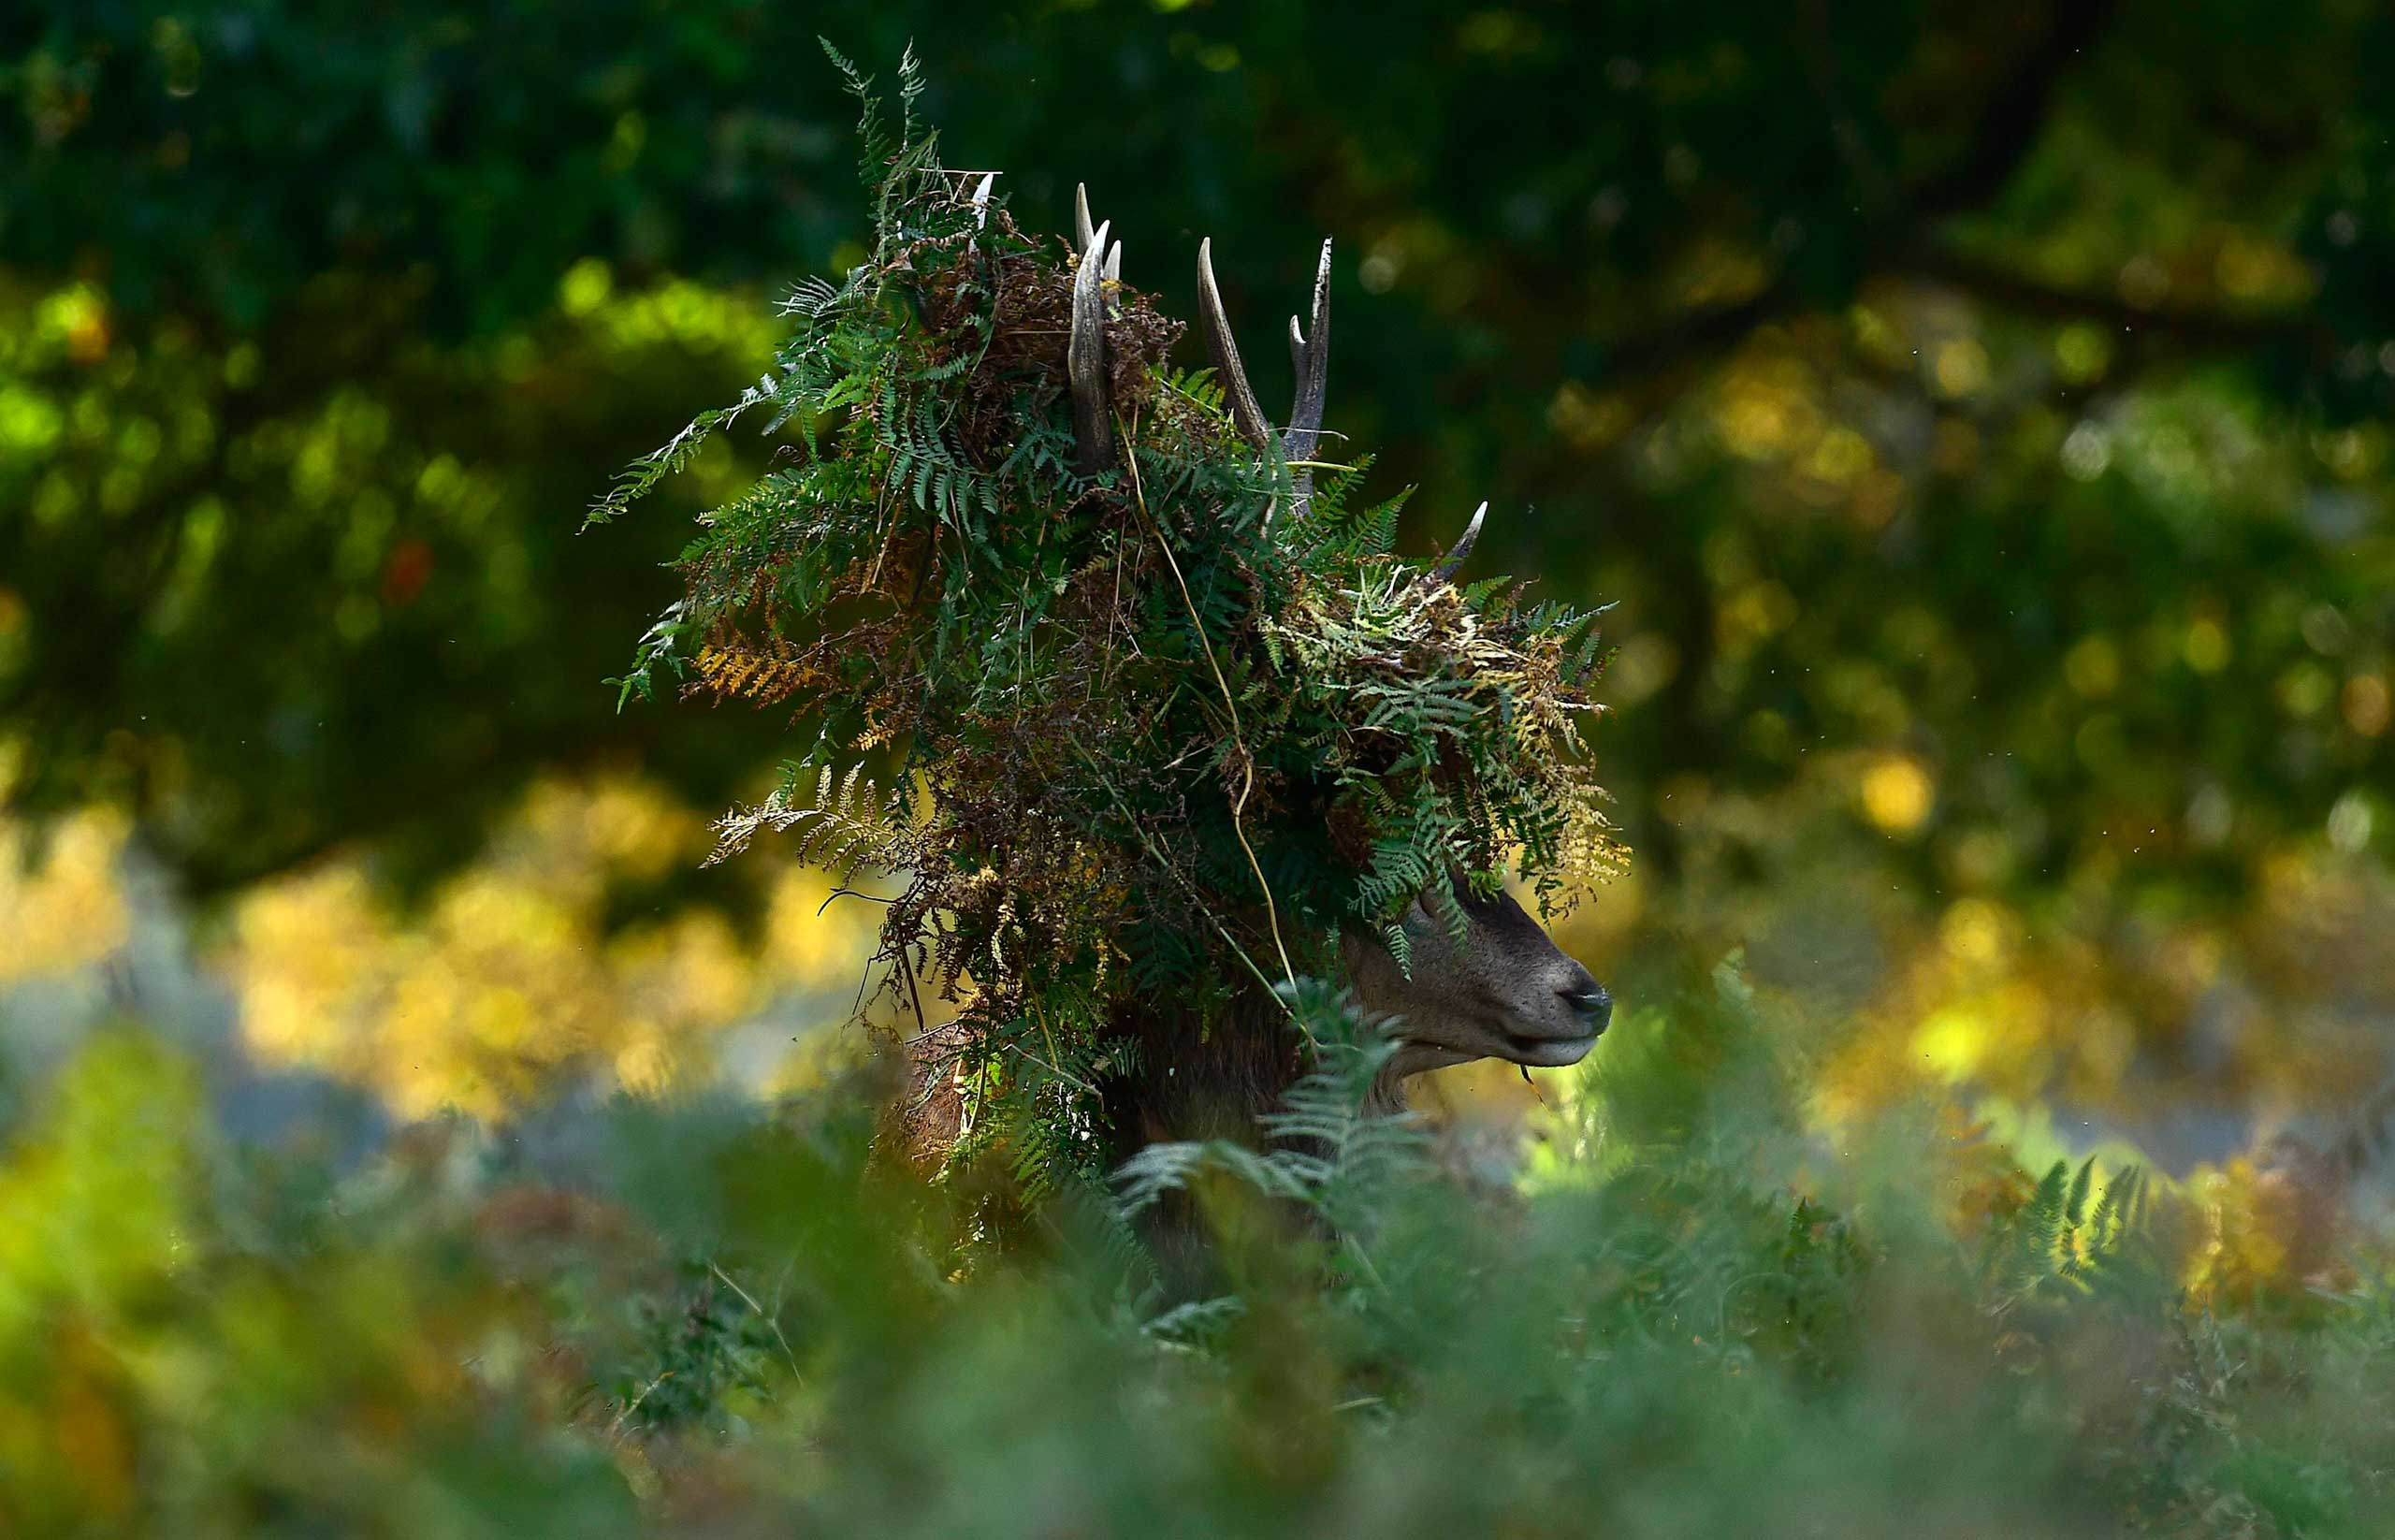 A male red deer with antlers covered in bracken, walks through undergrowth in Richmond Park, London, Oct. 3, 2014.